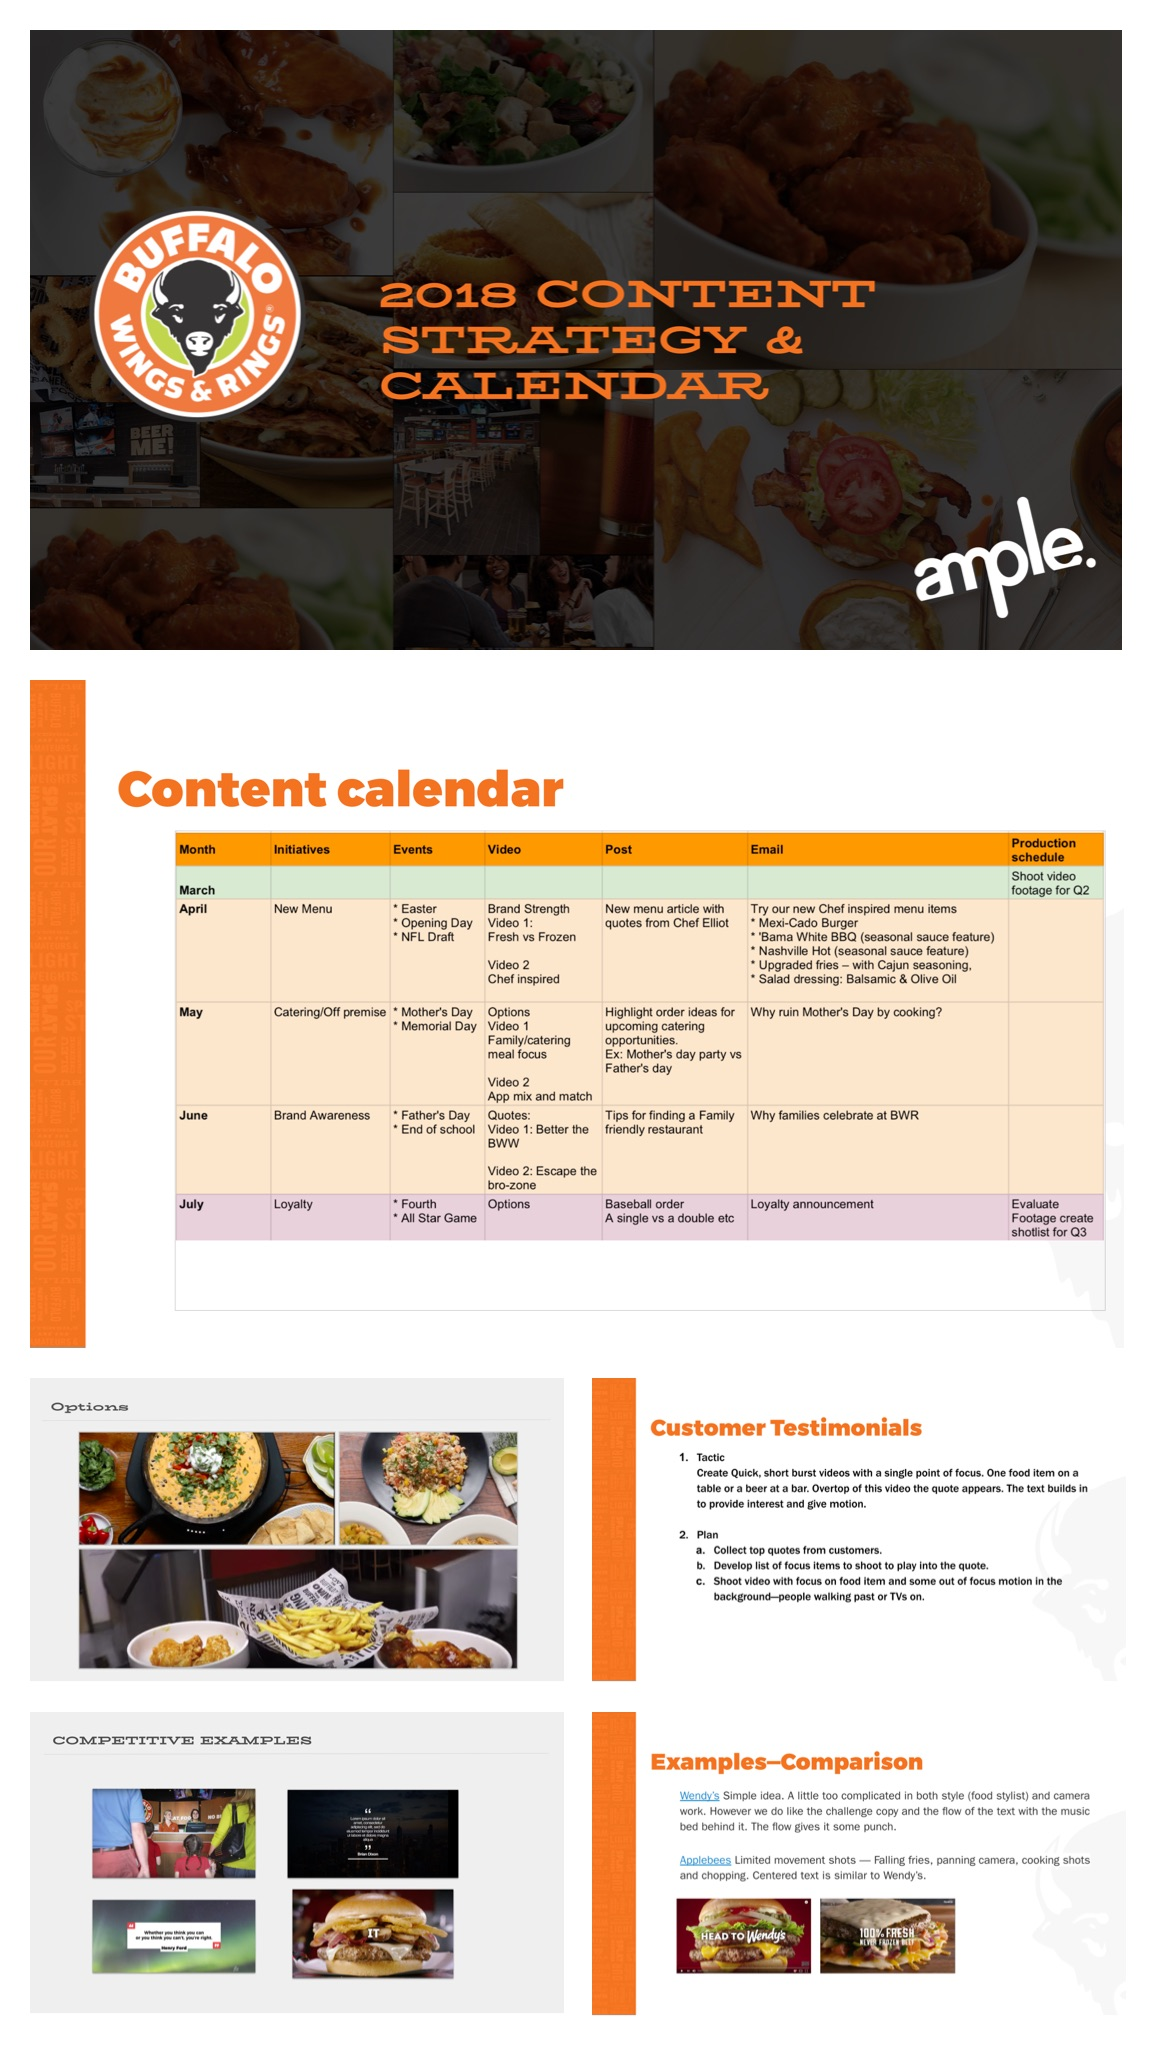 Buffalo Wings & Rings - Content Strategy & Planning